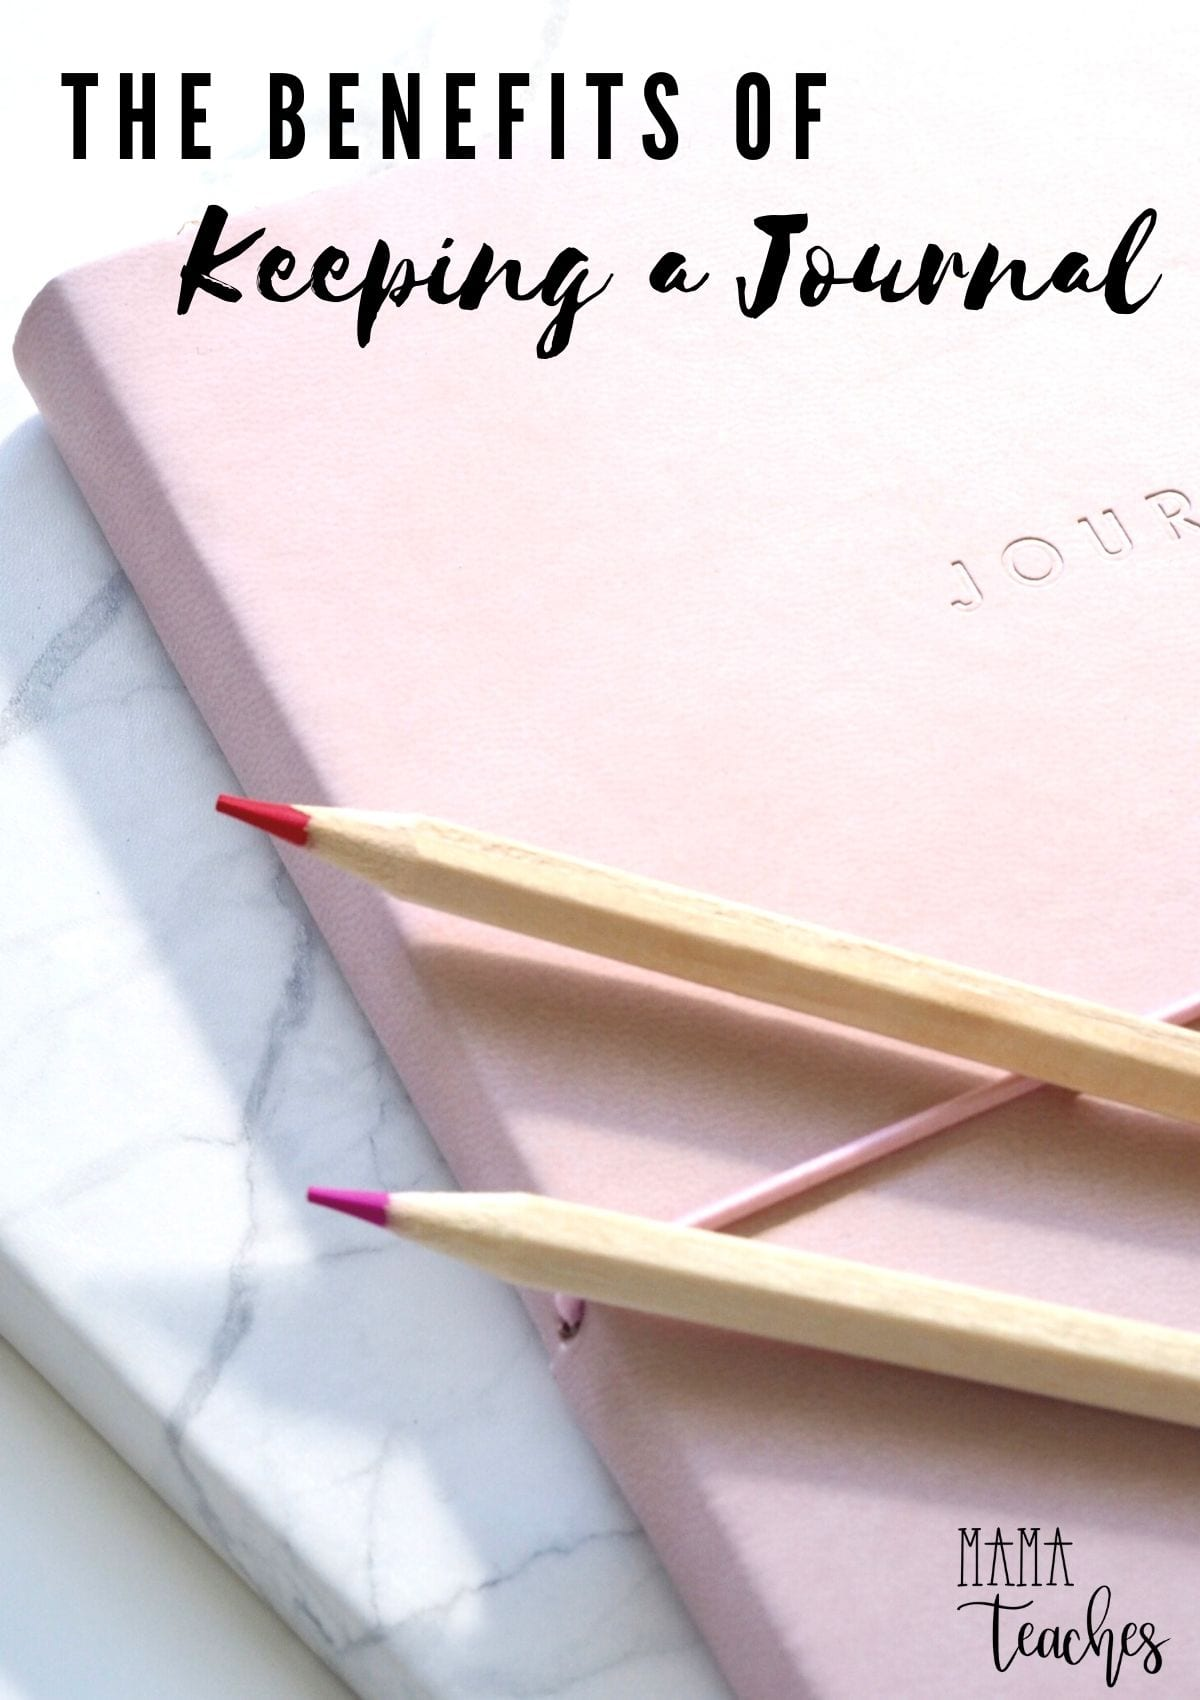 The Benefits of Keeping a Journal from MamaTeaches